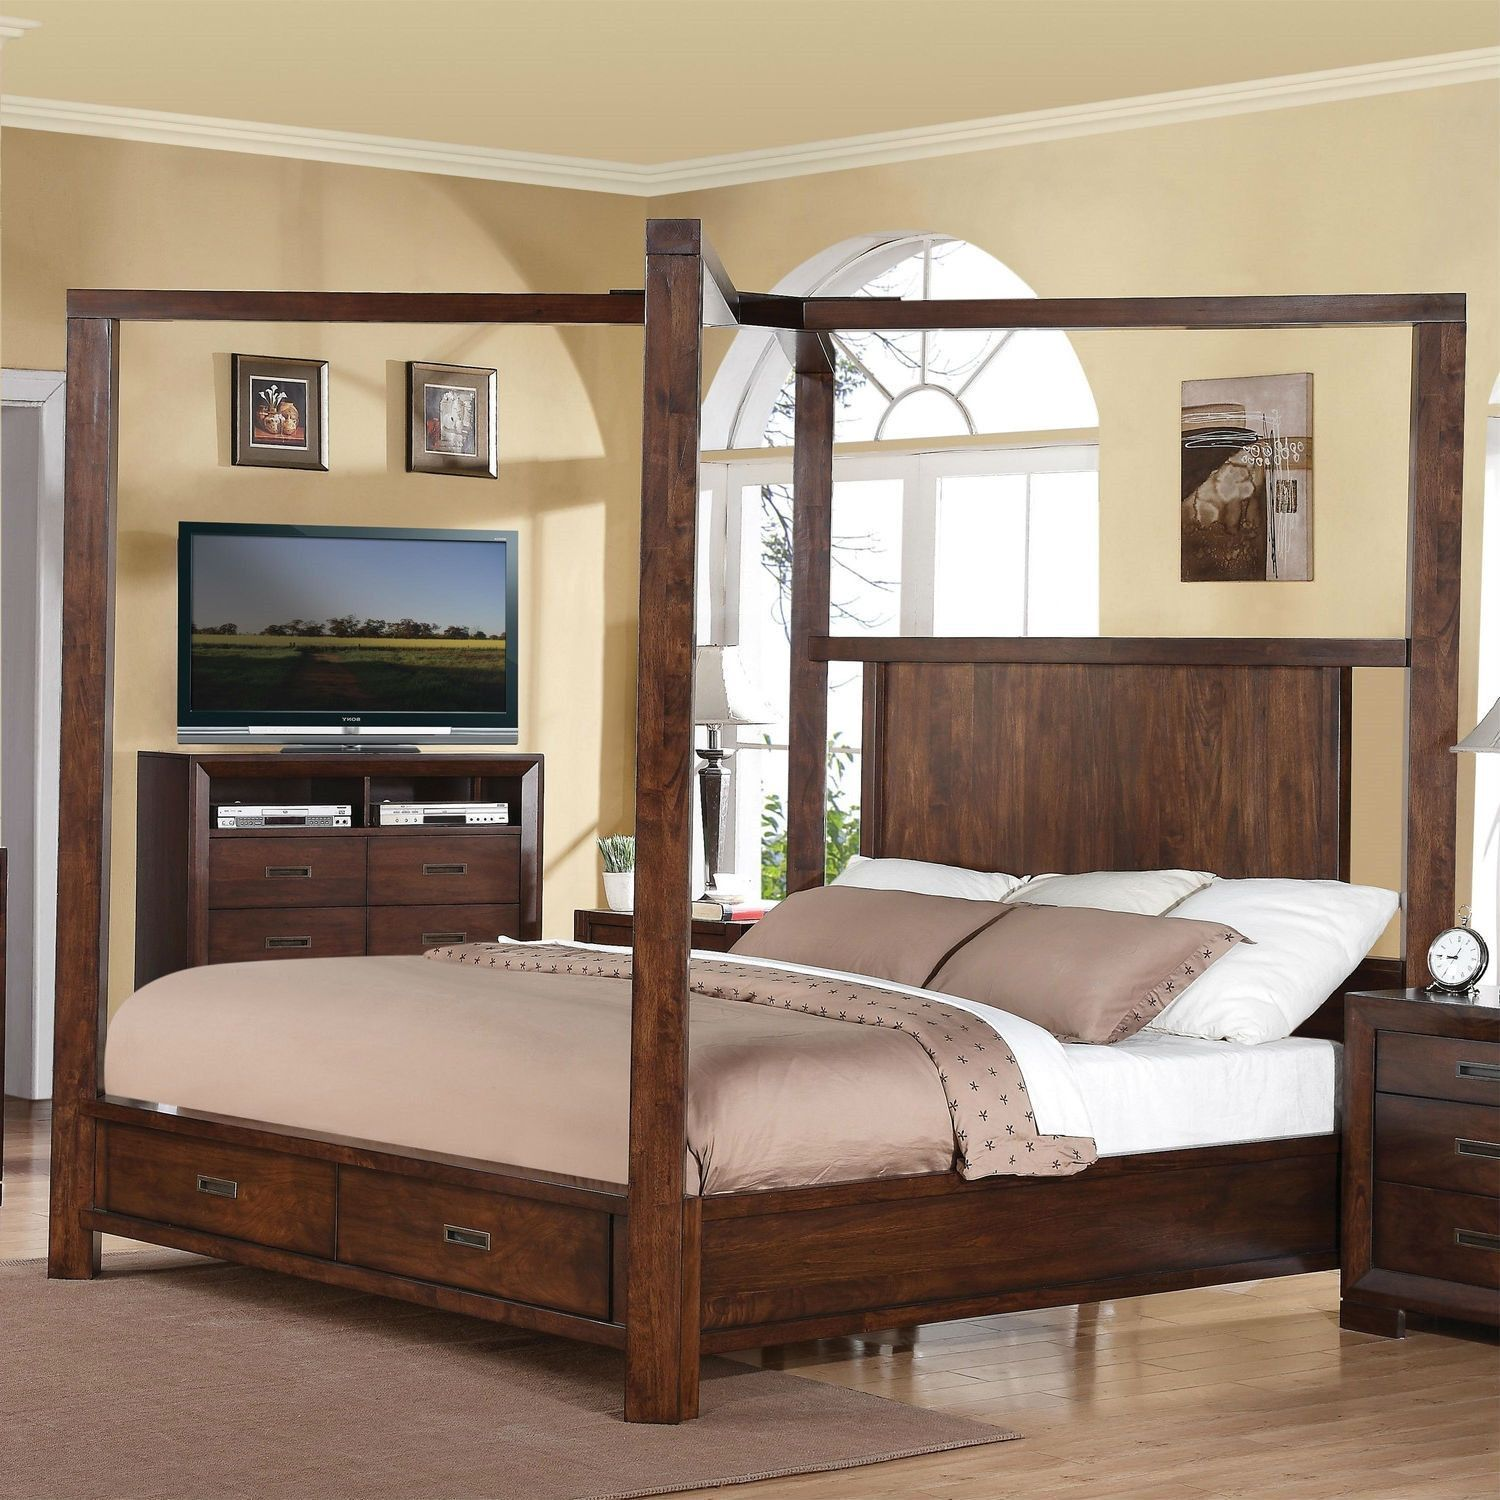 Contemporary Queen Size Wood Canopy Bed with Storage Drawers in Walnut Finish & Contemporary Queen Size Wood Canopy Bed with Storage Drawers in ...